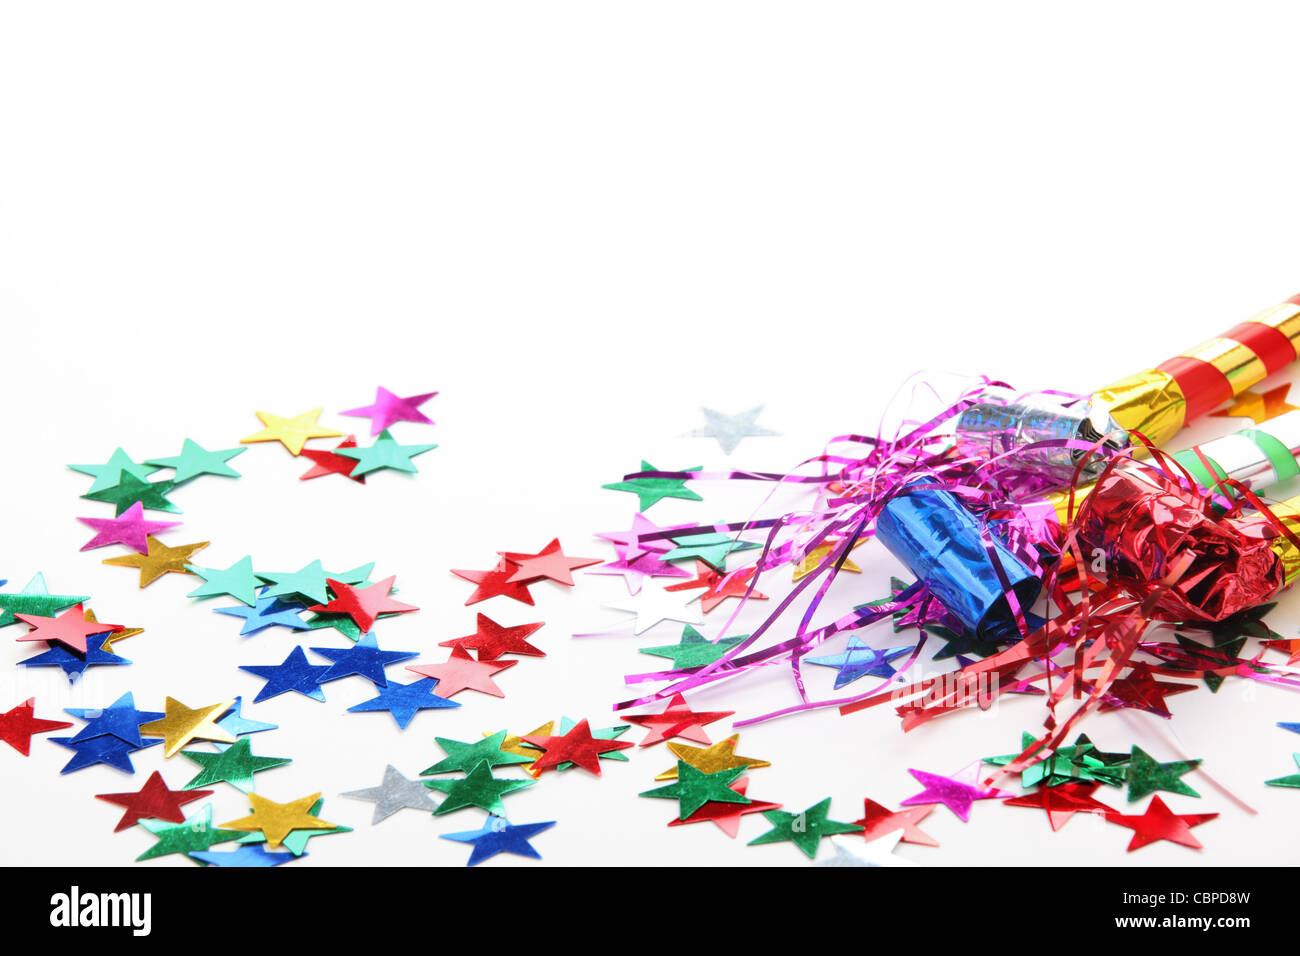 New Year's Eve noisemaker and confetti - Stock Image